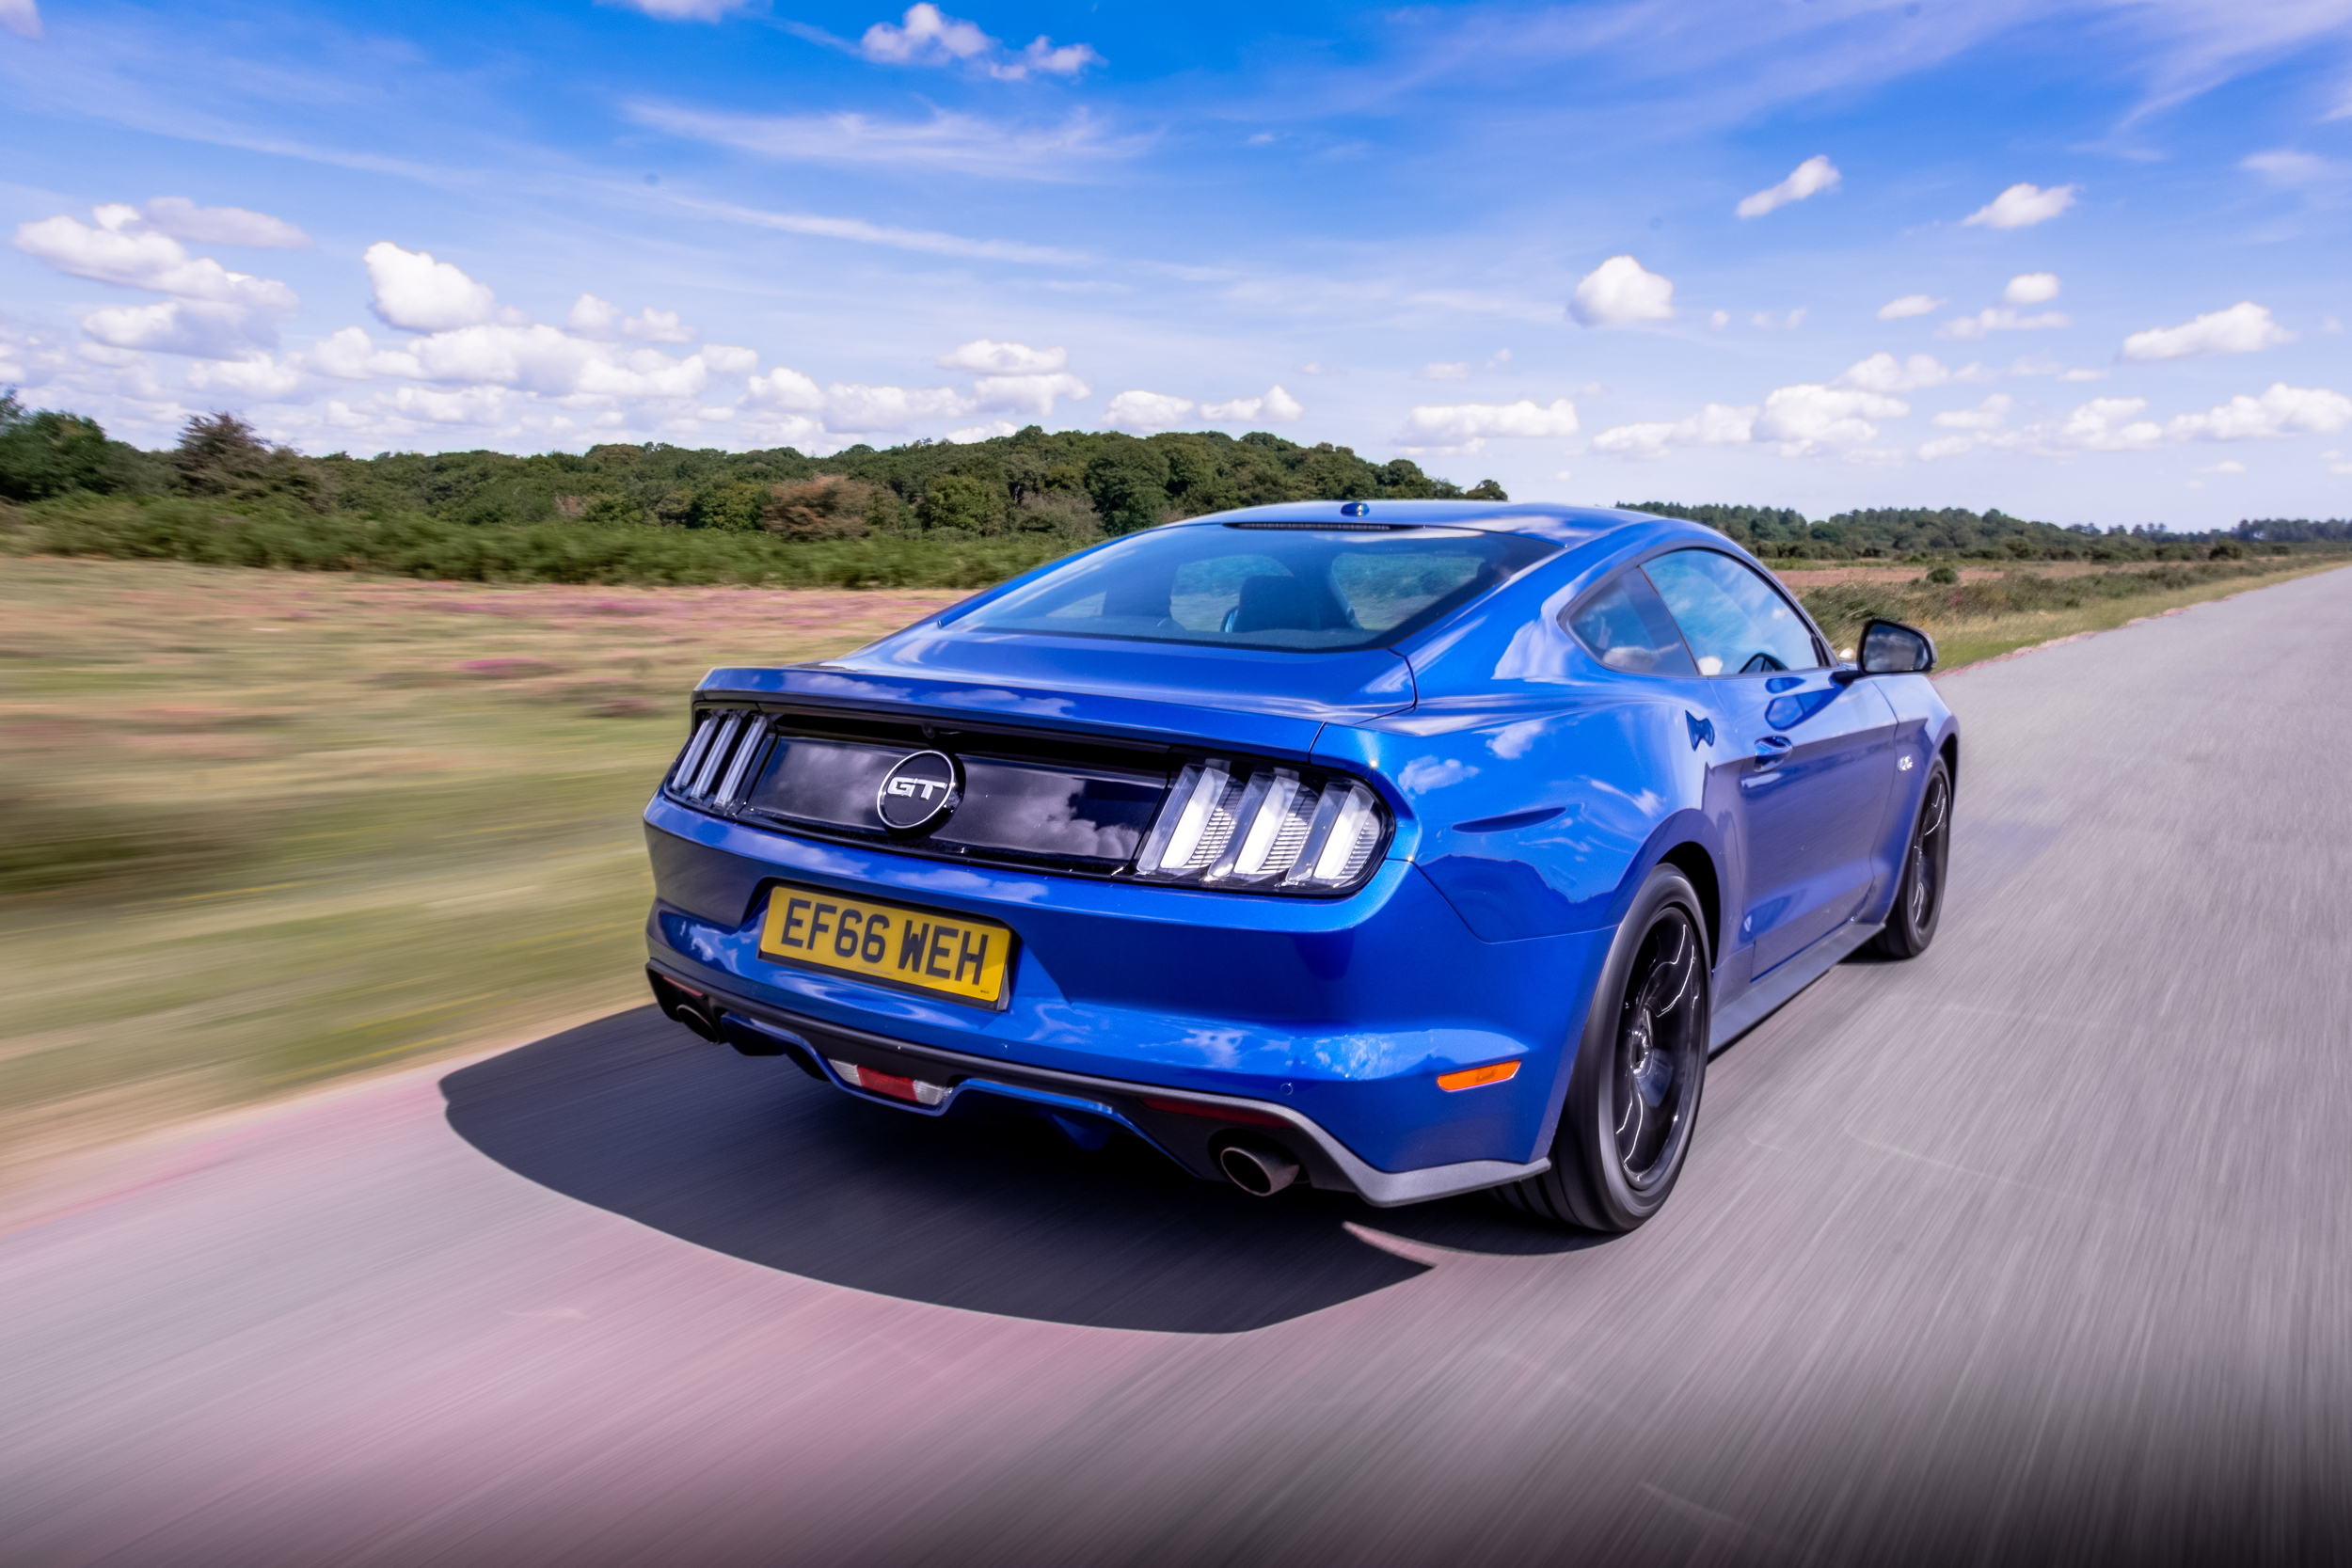 Ford Mustang rear speed